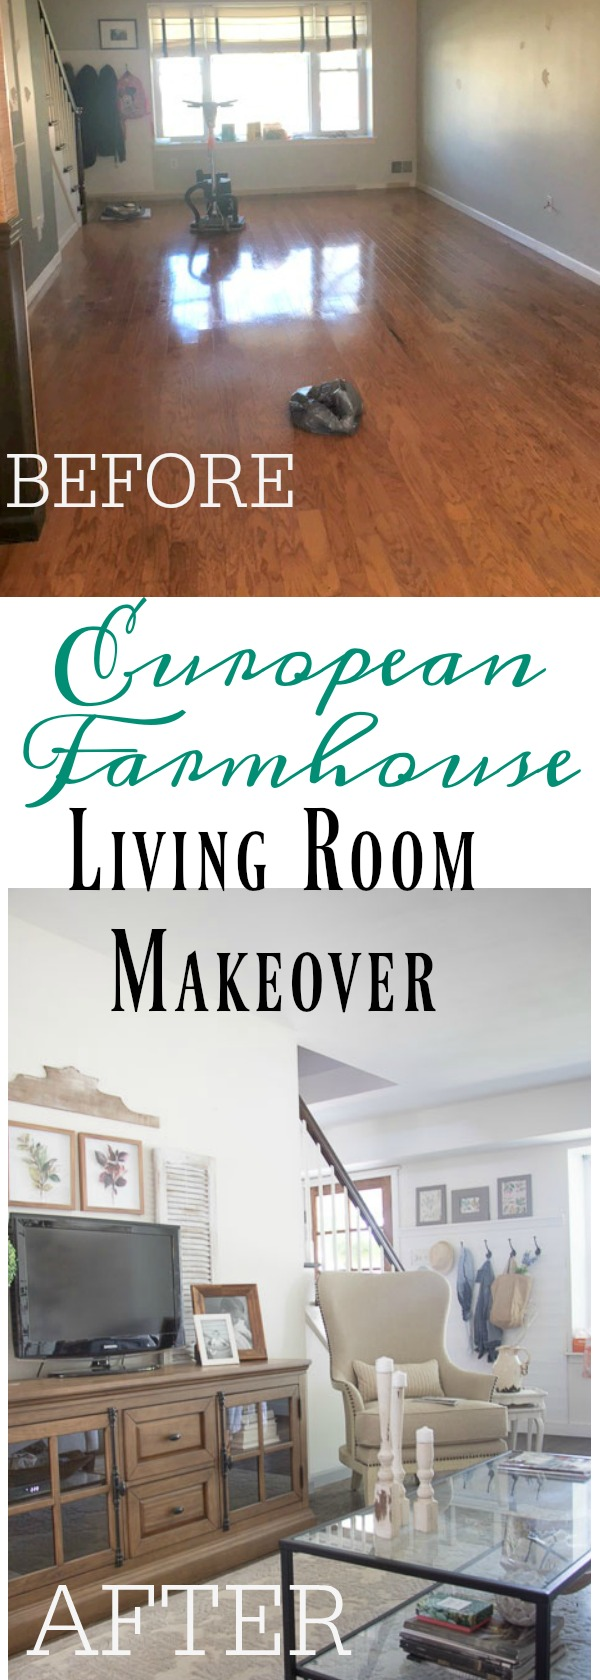 farmhouse furniture european farmhouse living room makeover love for you to share